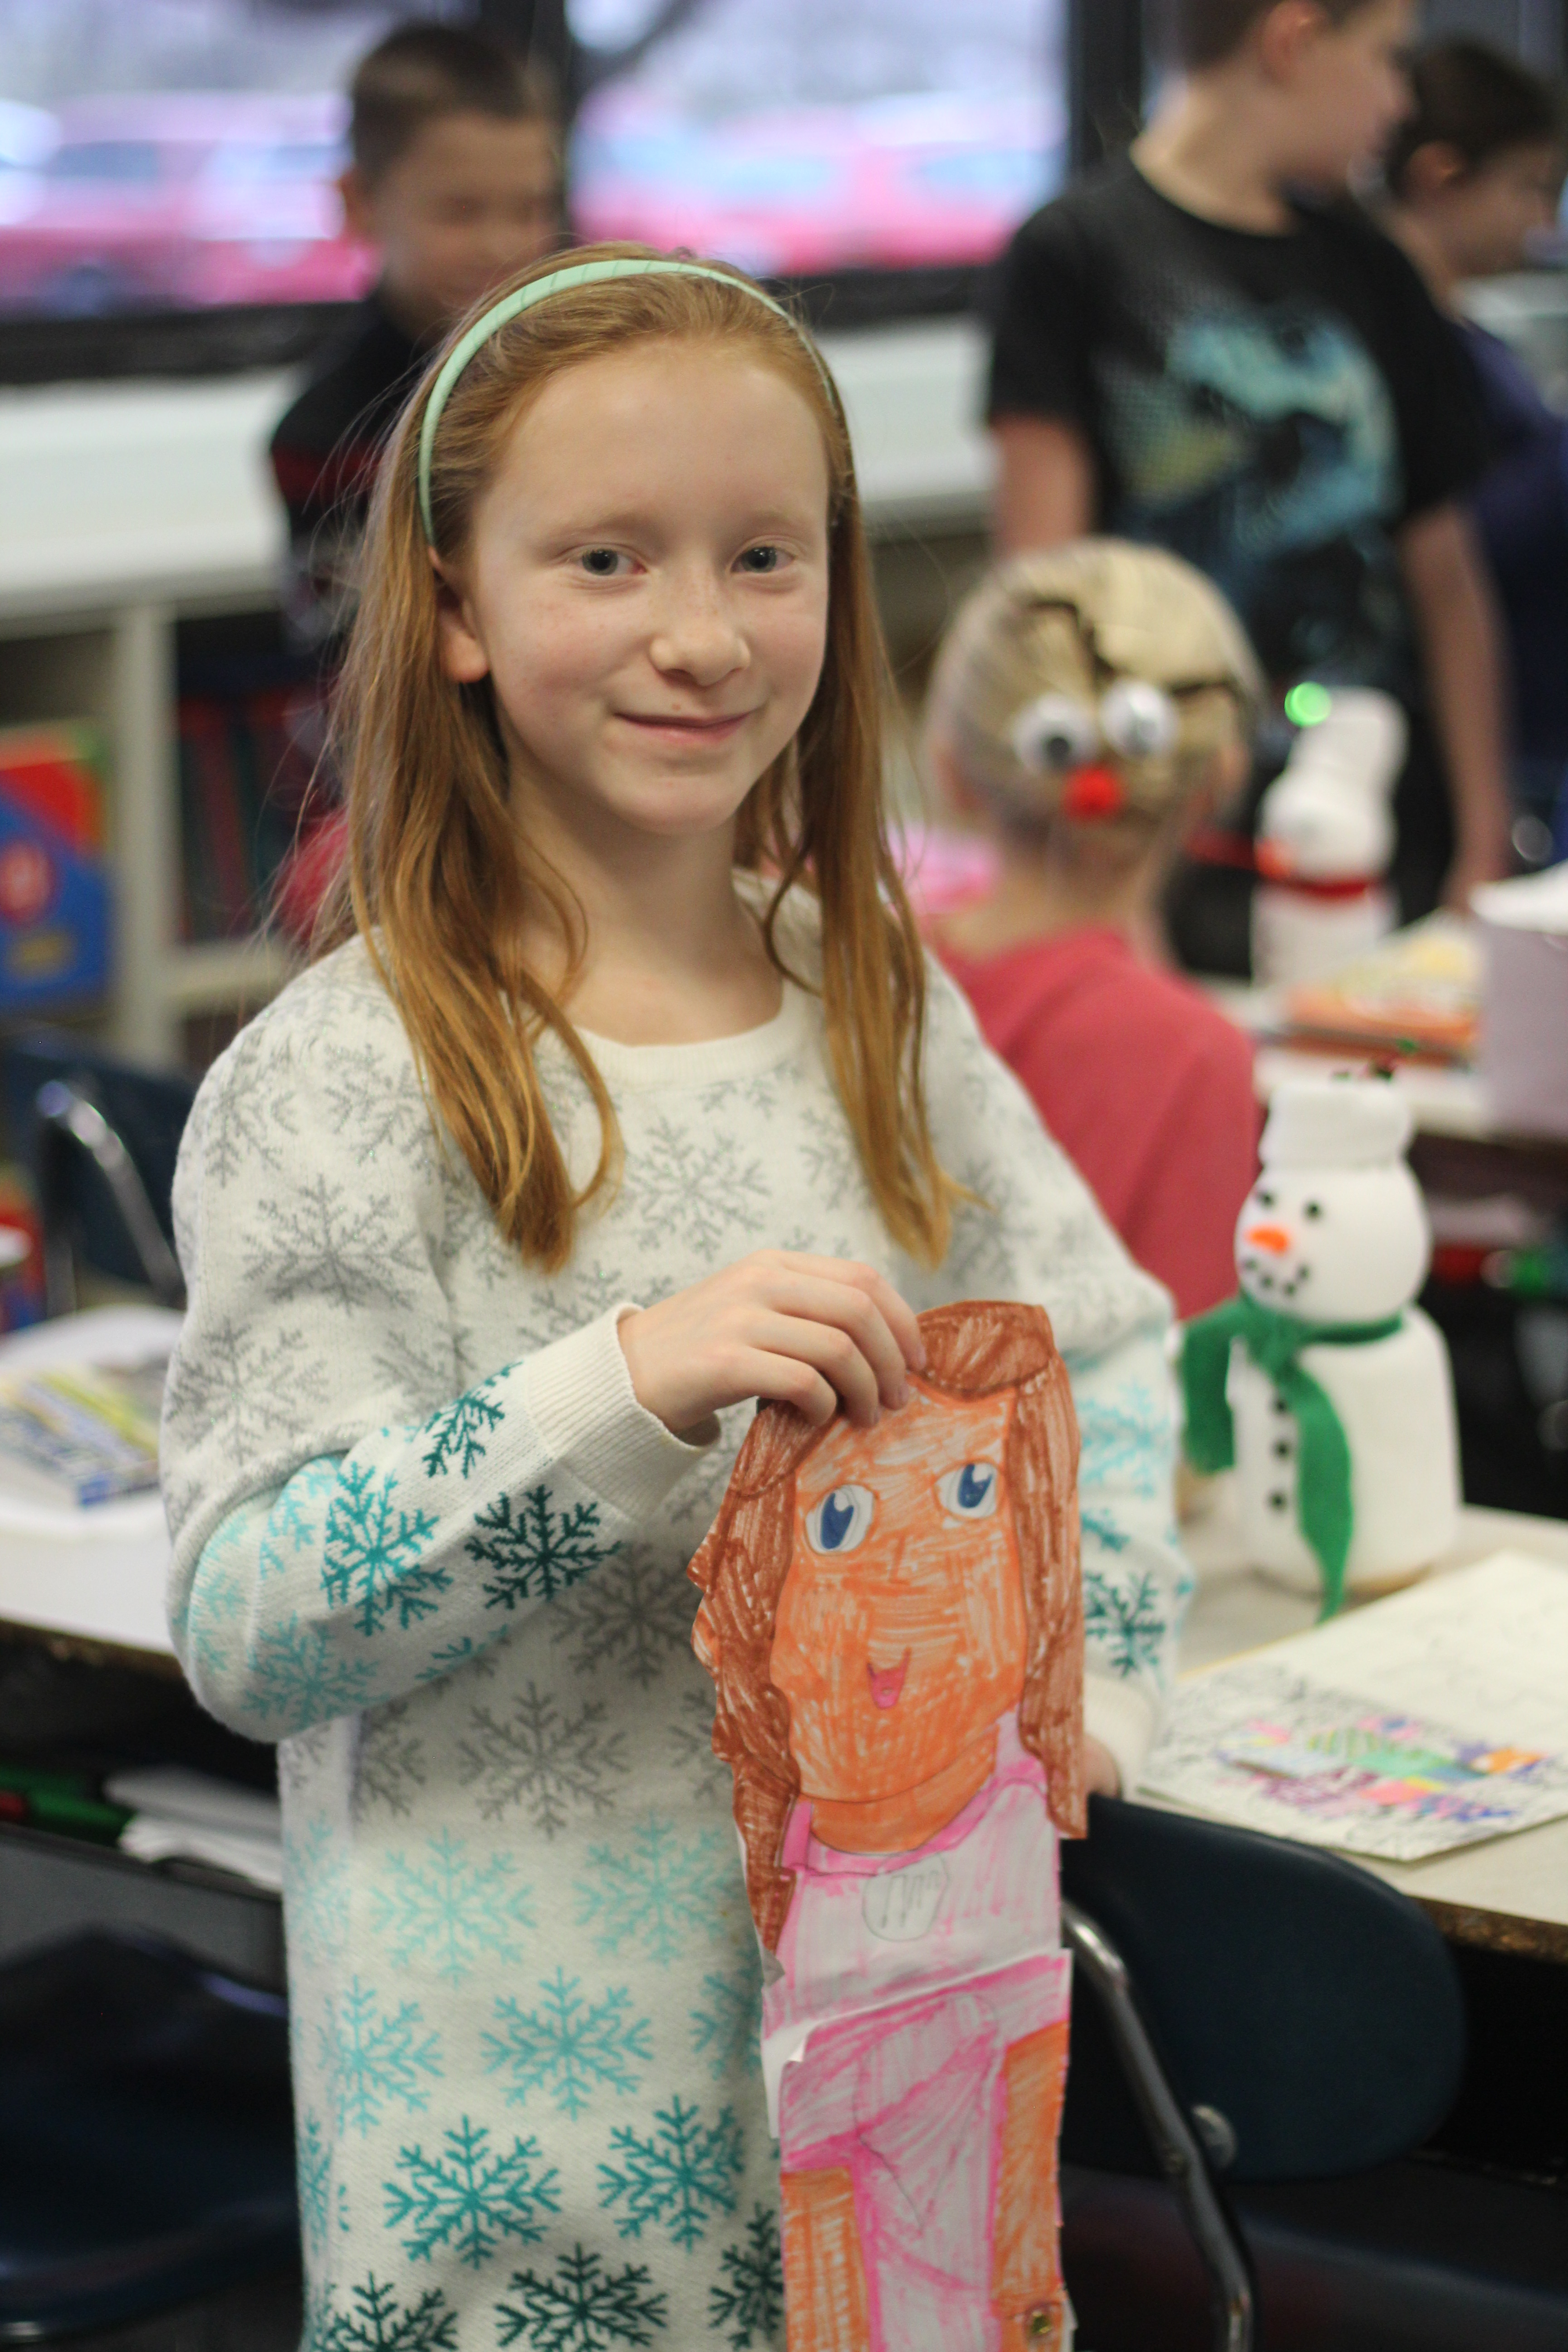 A girl smiles at the camera with her project